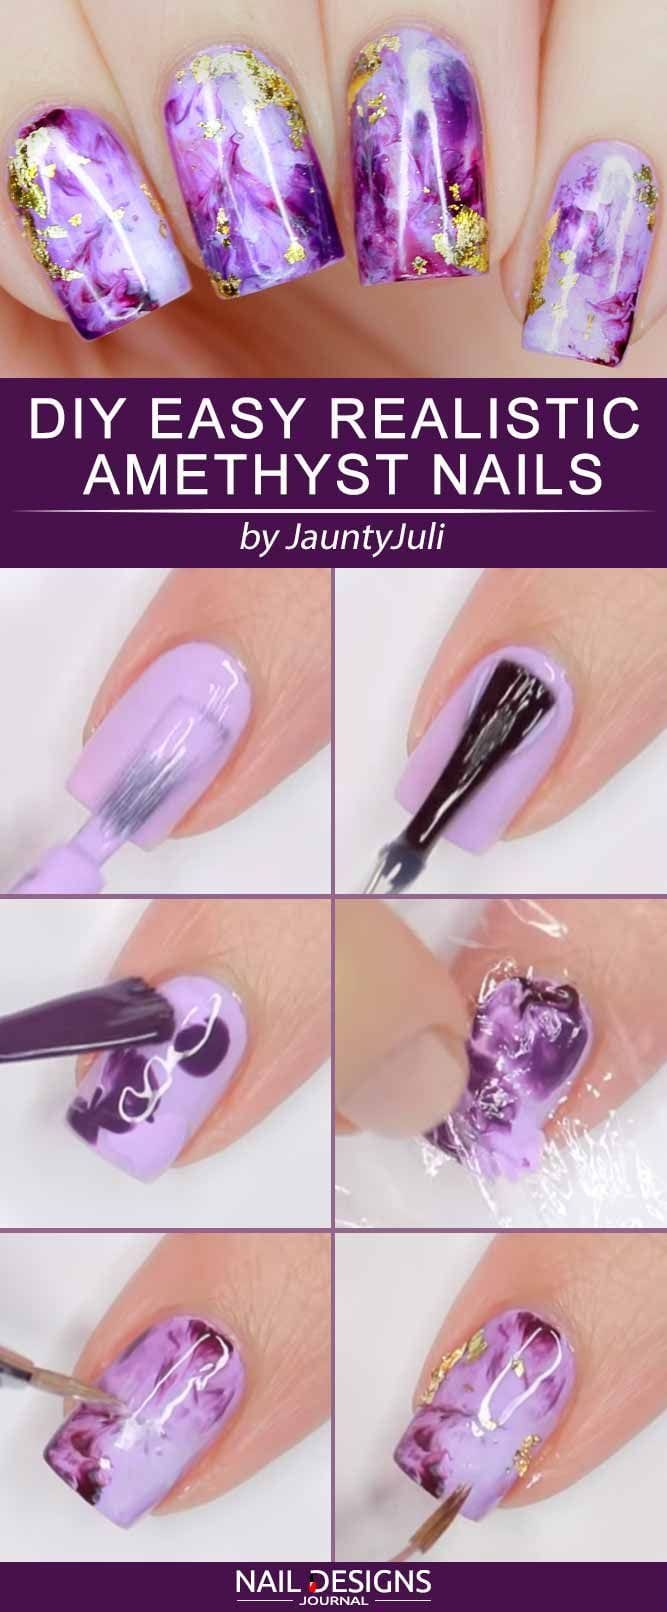 DIY Easy Realistic Amethyst Nails #amethystnails #marblenails #purplenails #foilnails #squarenails ❤️ There are so many DIY nails ideas out there and we did our best to gather the trendiest ones here. ❤️ See more: naildesignsjourna… #naildesignsjournal #nails #nailart #naildesigns #diynails…